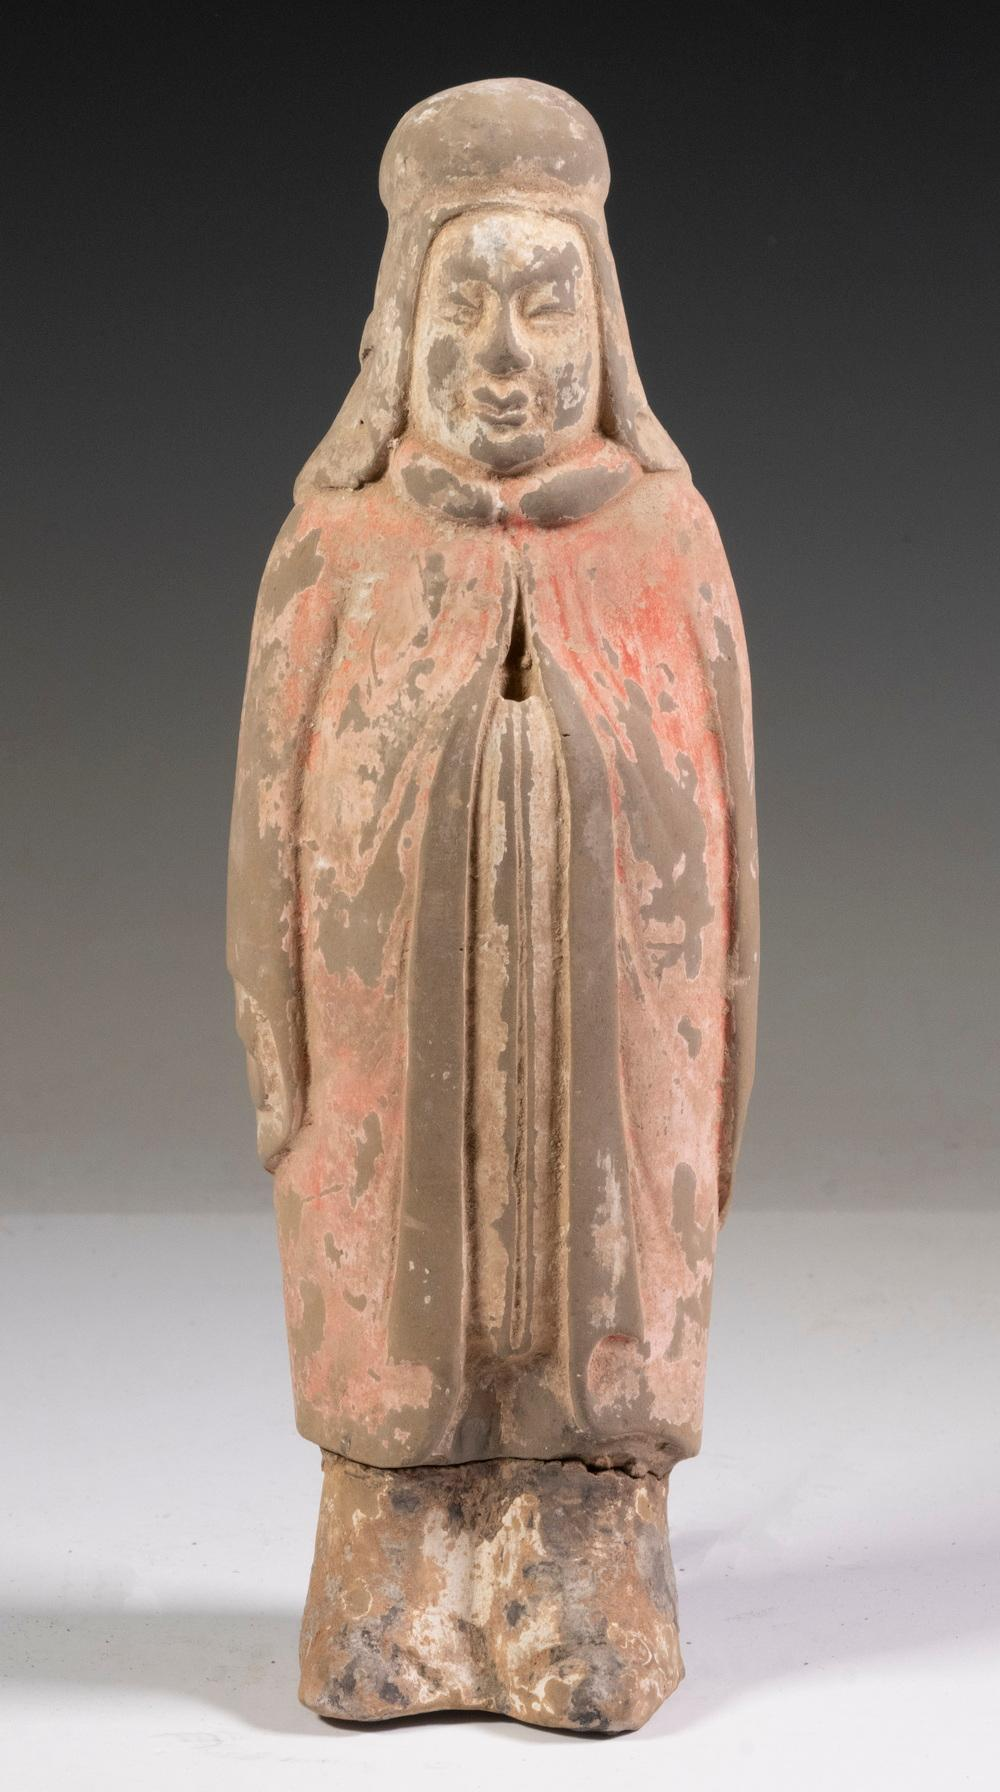 CHINESE NORTHERN QI (550-577 AD) STANDING POTTERY PRIEST